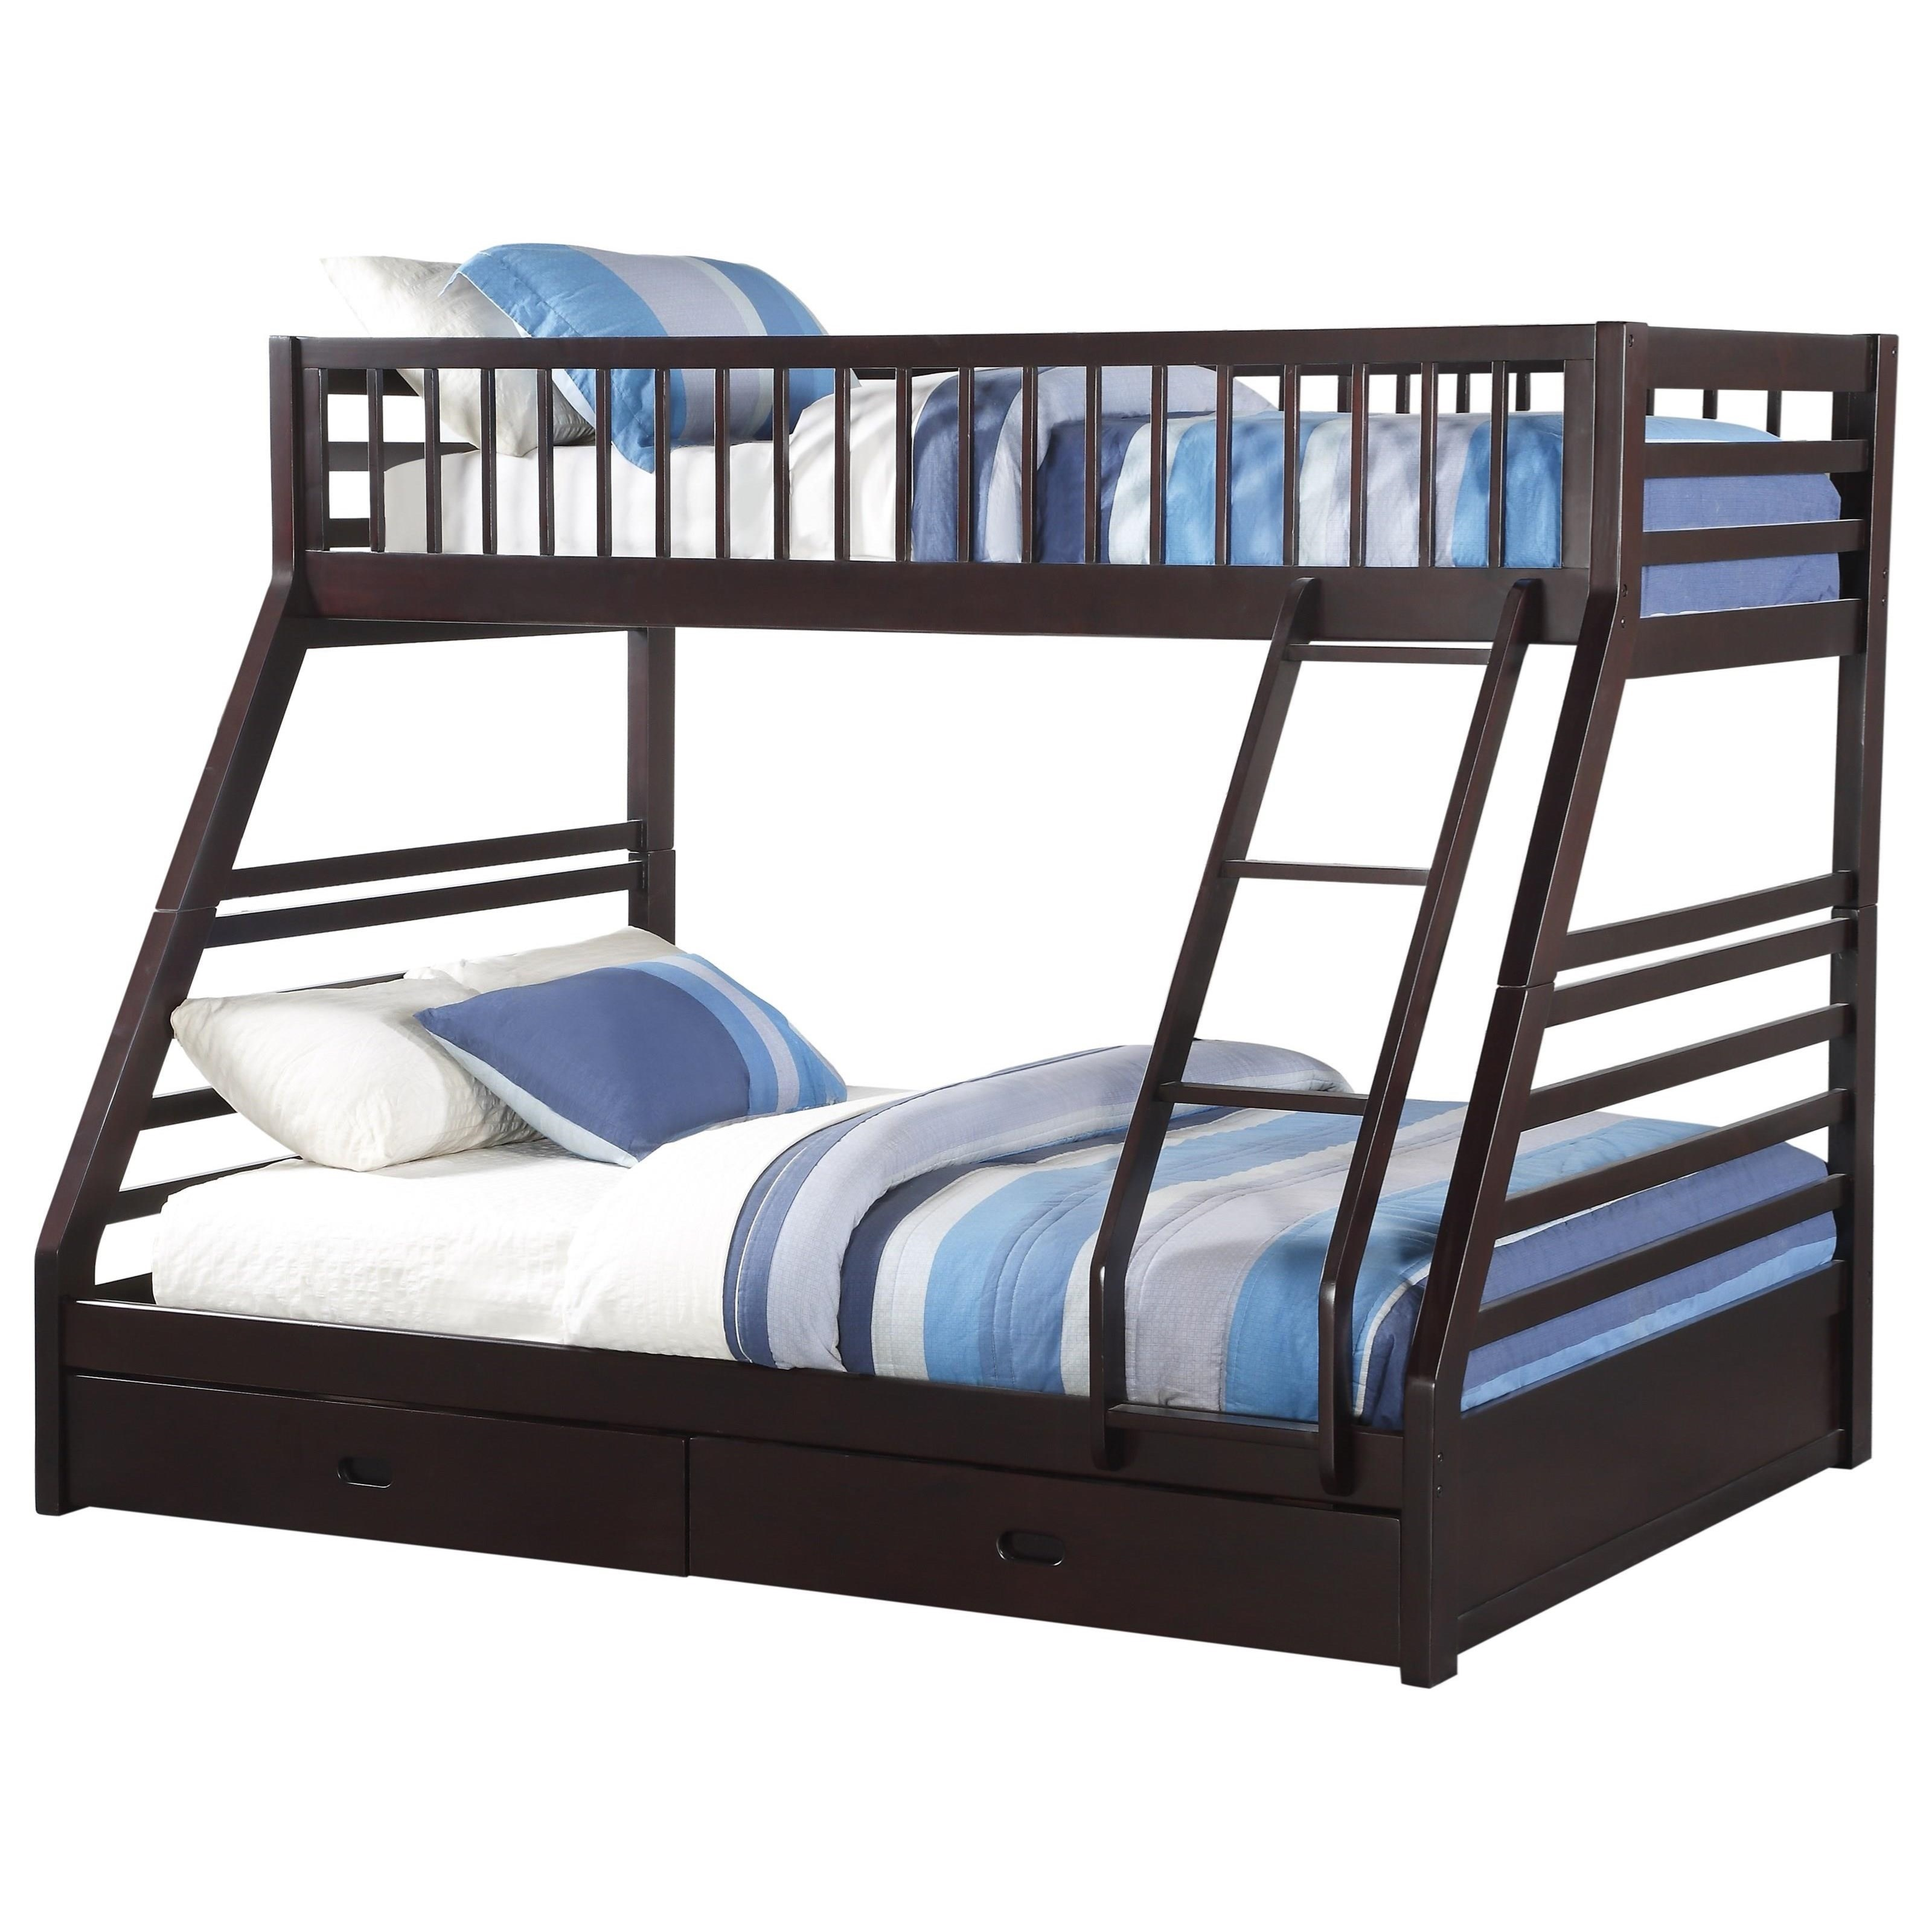 Picture of: Acme Furniture Jason Xl Twin Xl Queen Bunk Bed W Drw Dream Home Interiors Bunk Beds